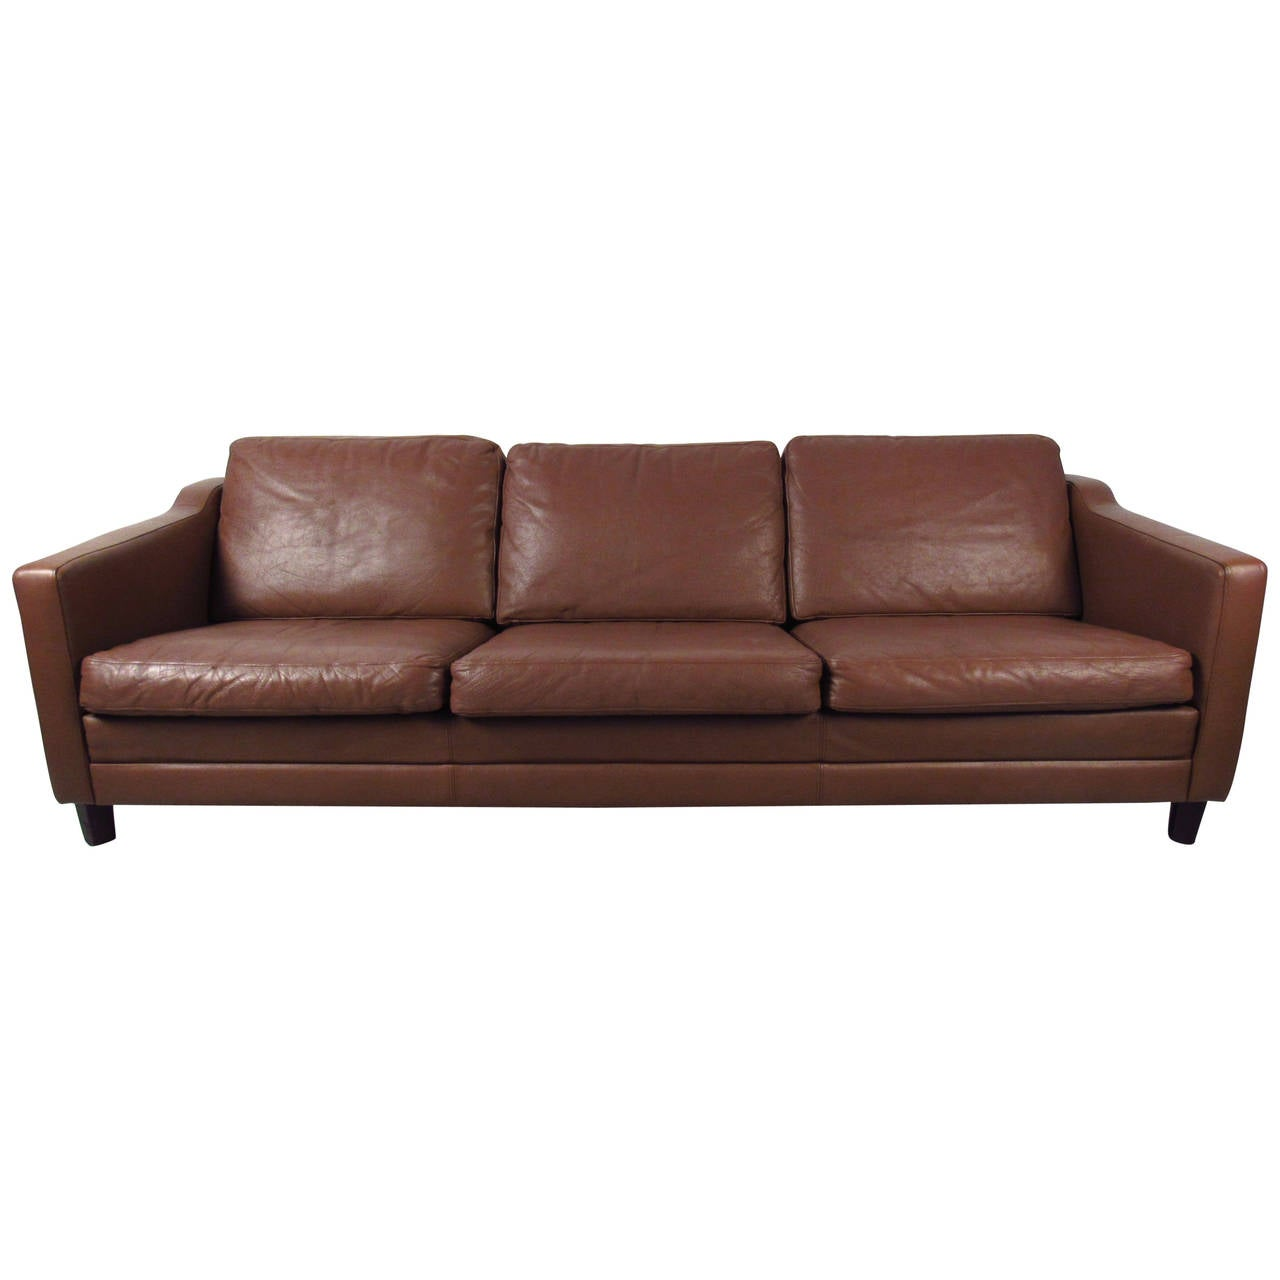 Mid Century Modern Danish Leather Sofa in the Style of B¸rge